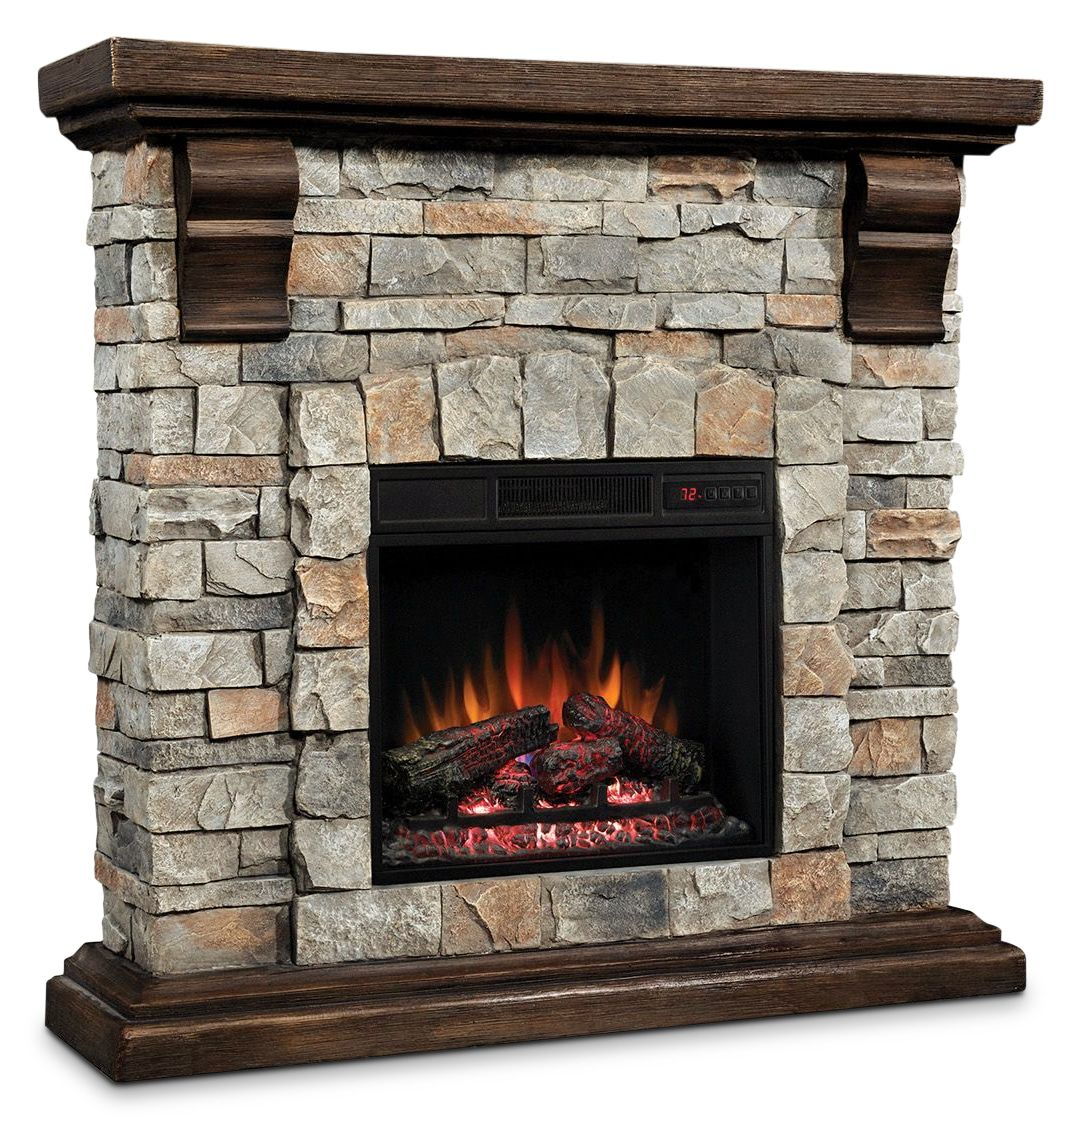 The Pioneer Fireplace Boasts Stone Detailing Engineered To Look And Feel Like Real Stone An Infrared Fir Stone Electric Fireplace Fireplace Electric Fireplace